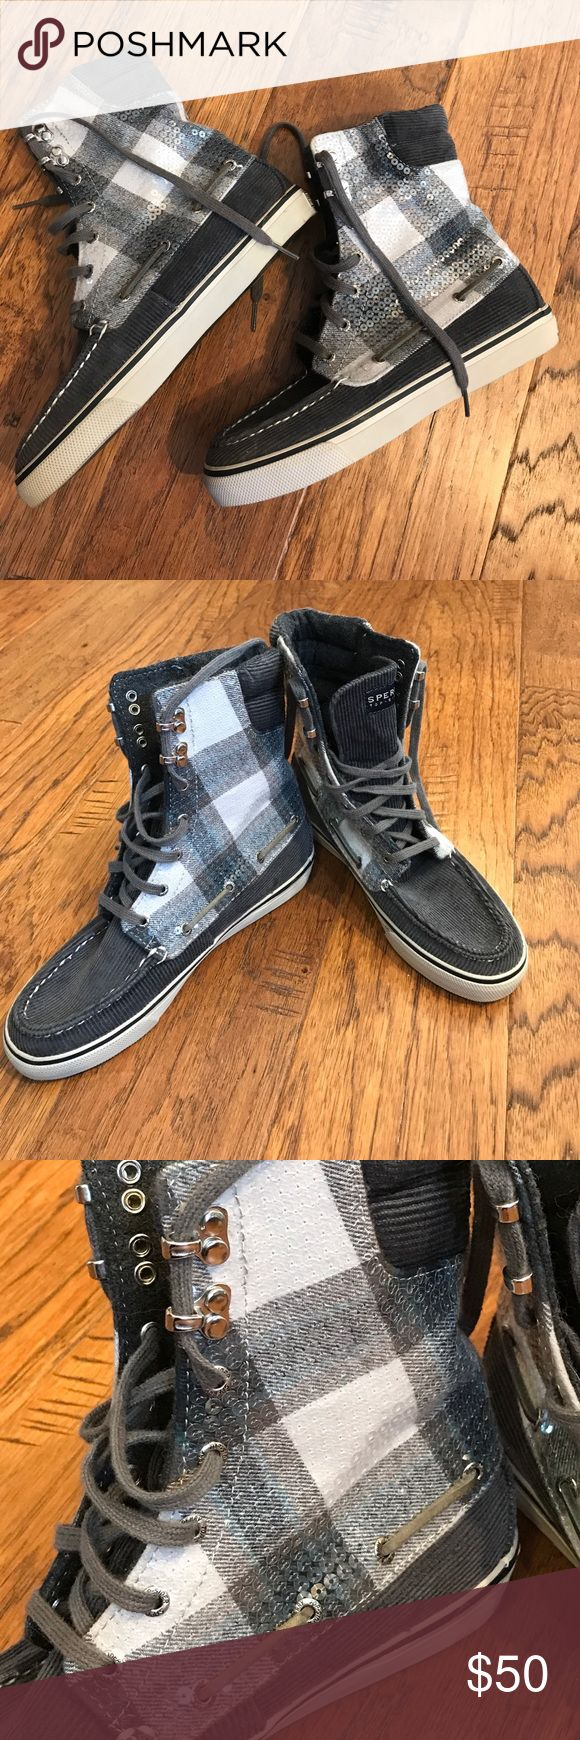 NWOT Sperry high tops NWOT but still have sticker on bottom of shoe as shown in picture. Blue plaid high top Sperry top sider sneakers with sequence going up them. They are a size 6.5 and fit true to size. Sperry Top-Sider Shoes Sneakers